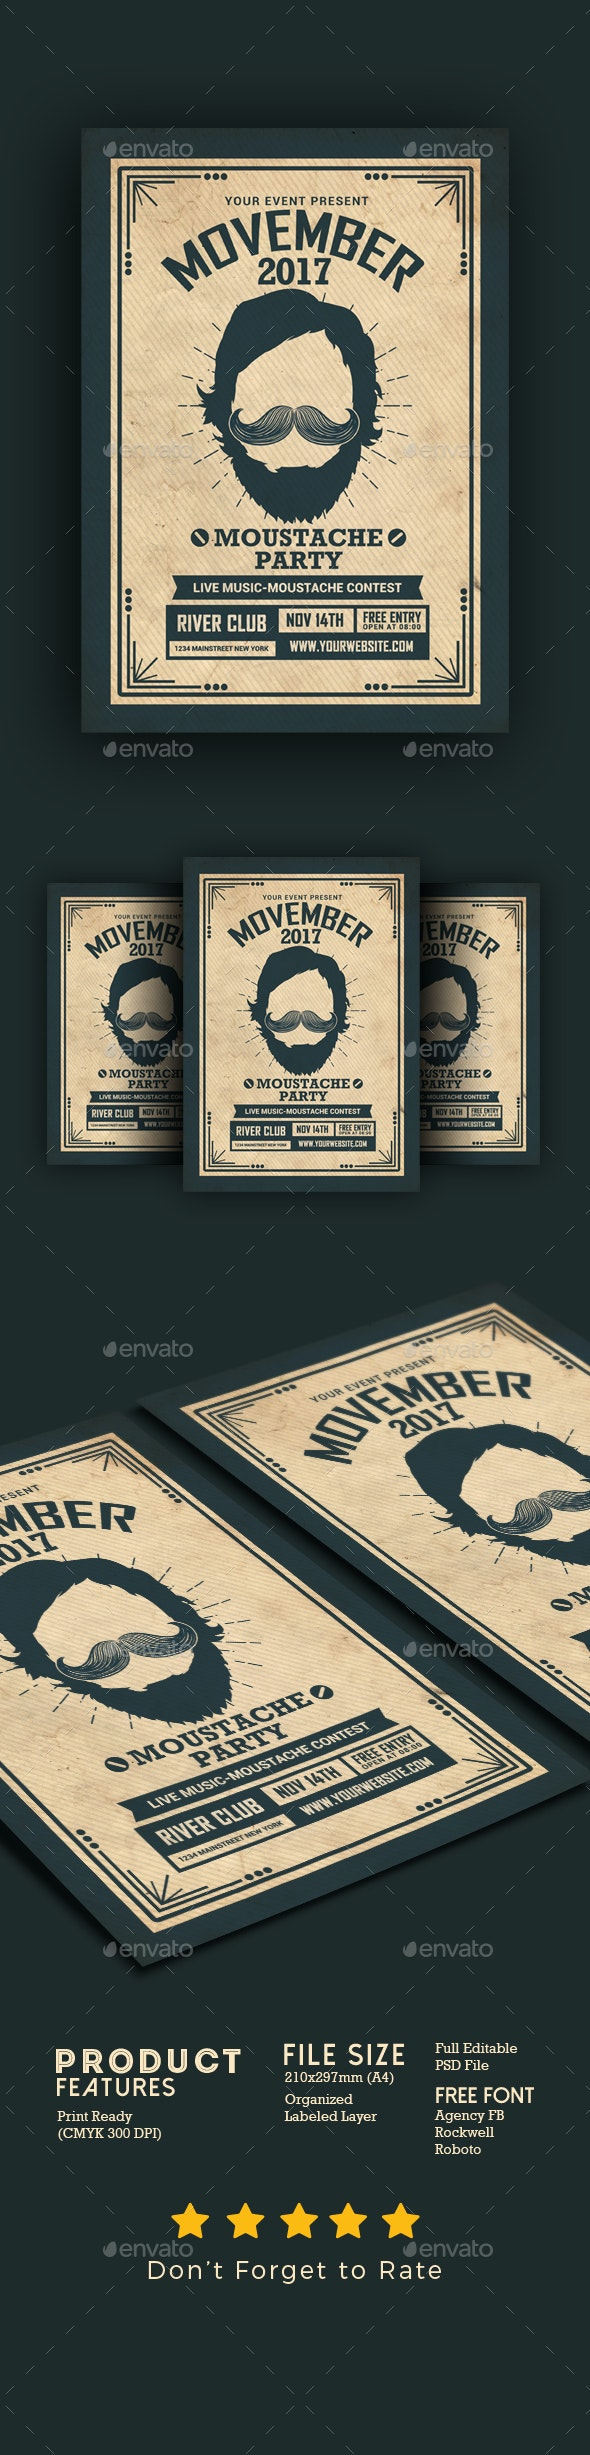 Movember Event Flyer - Events Flyers